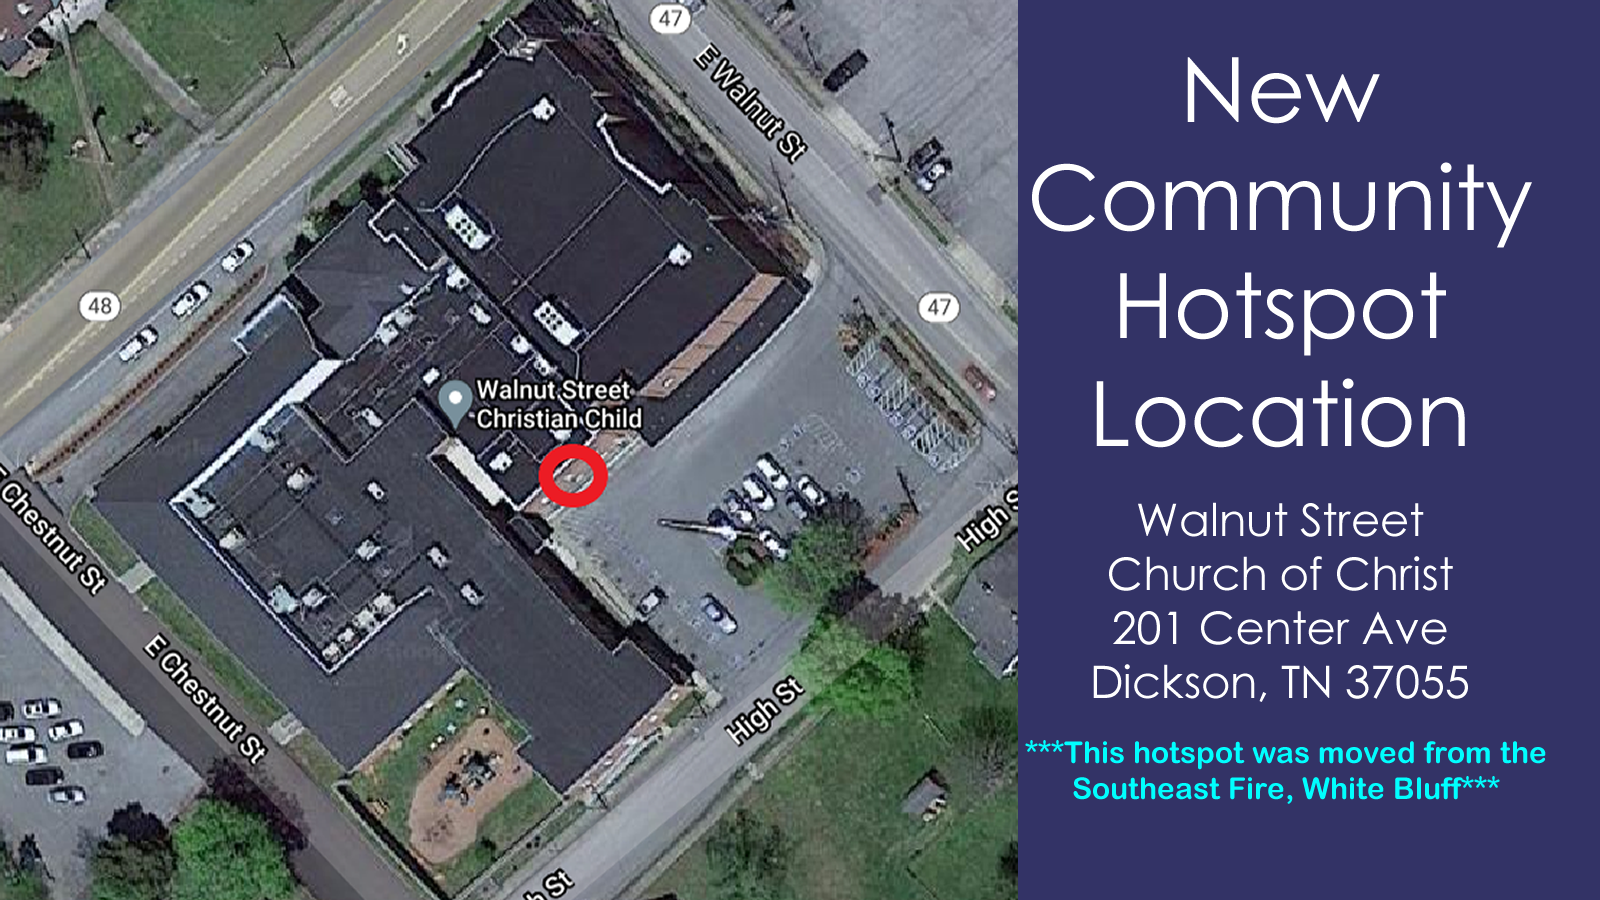 New Community Hotspot Location - Walnut Street Church of Christ